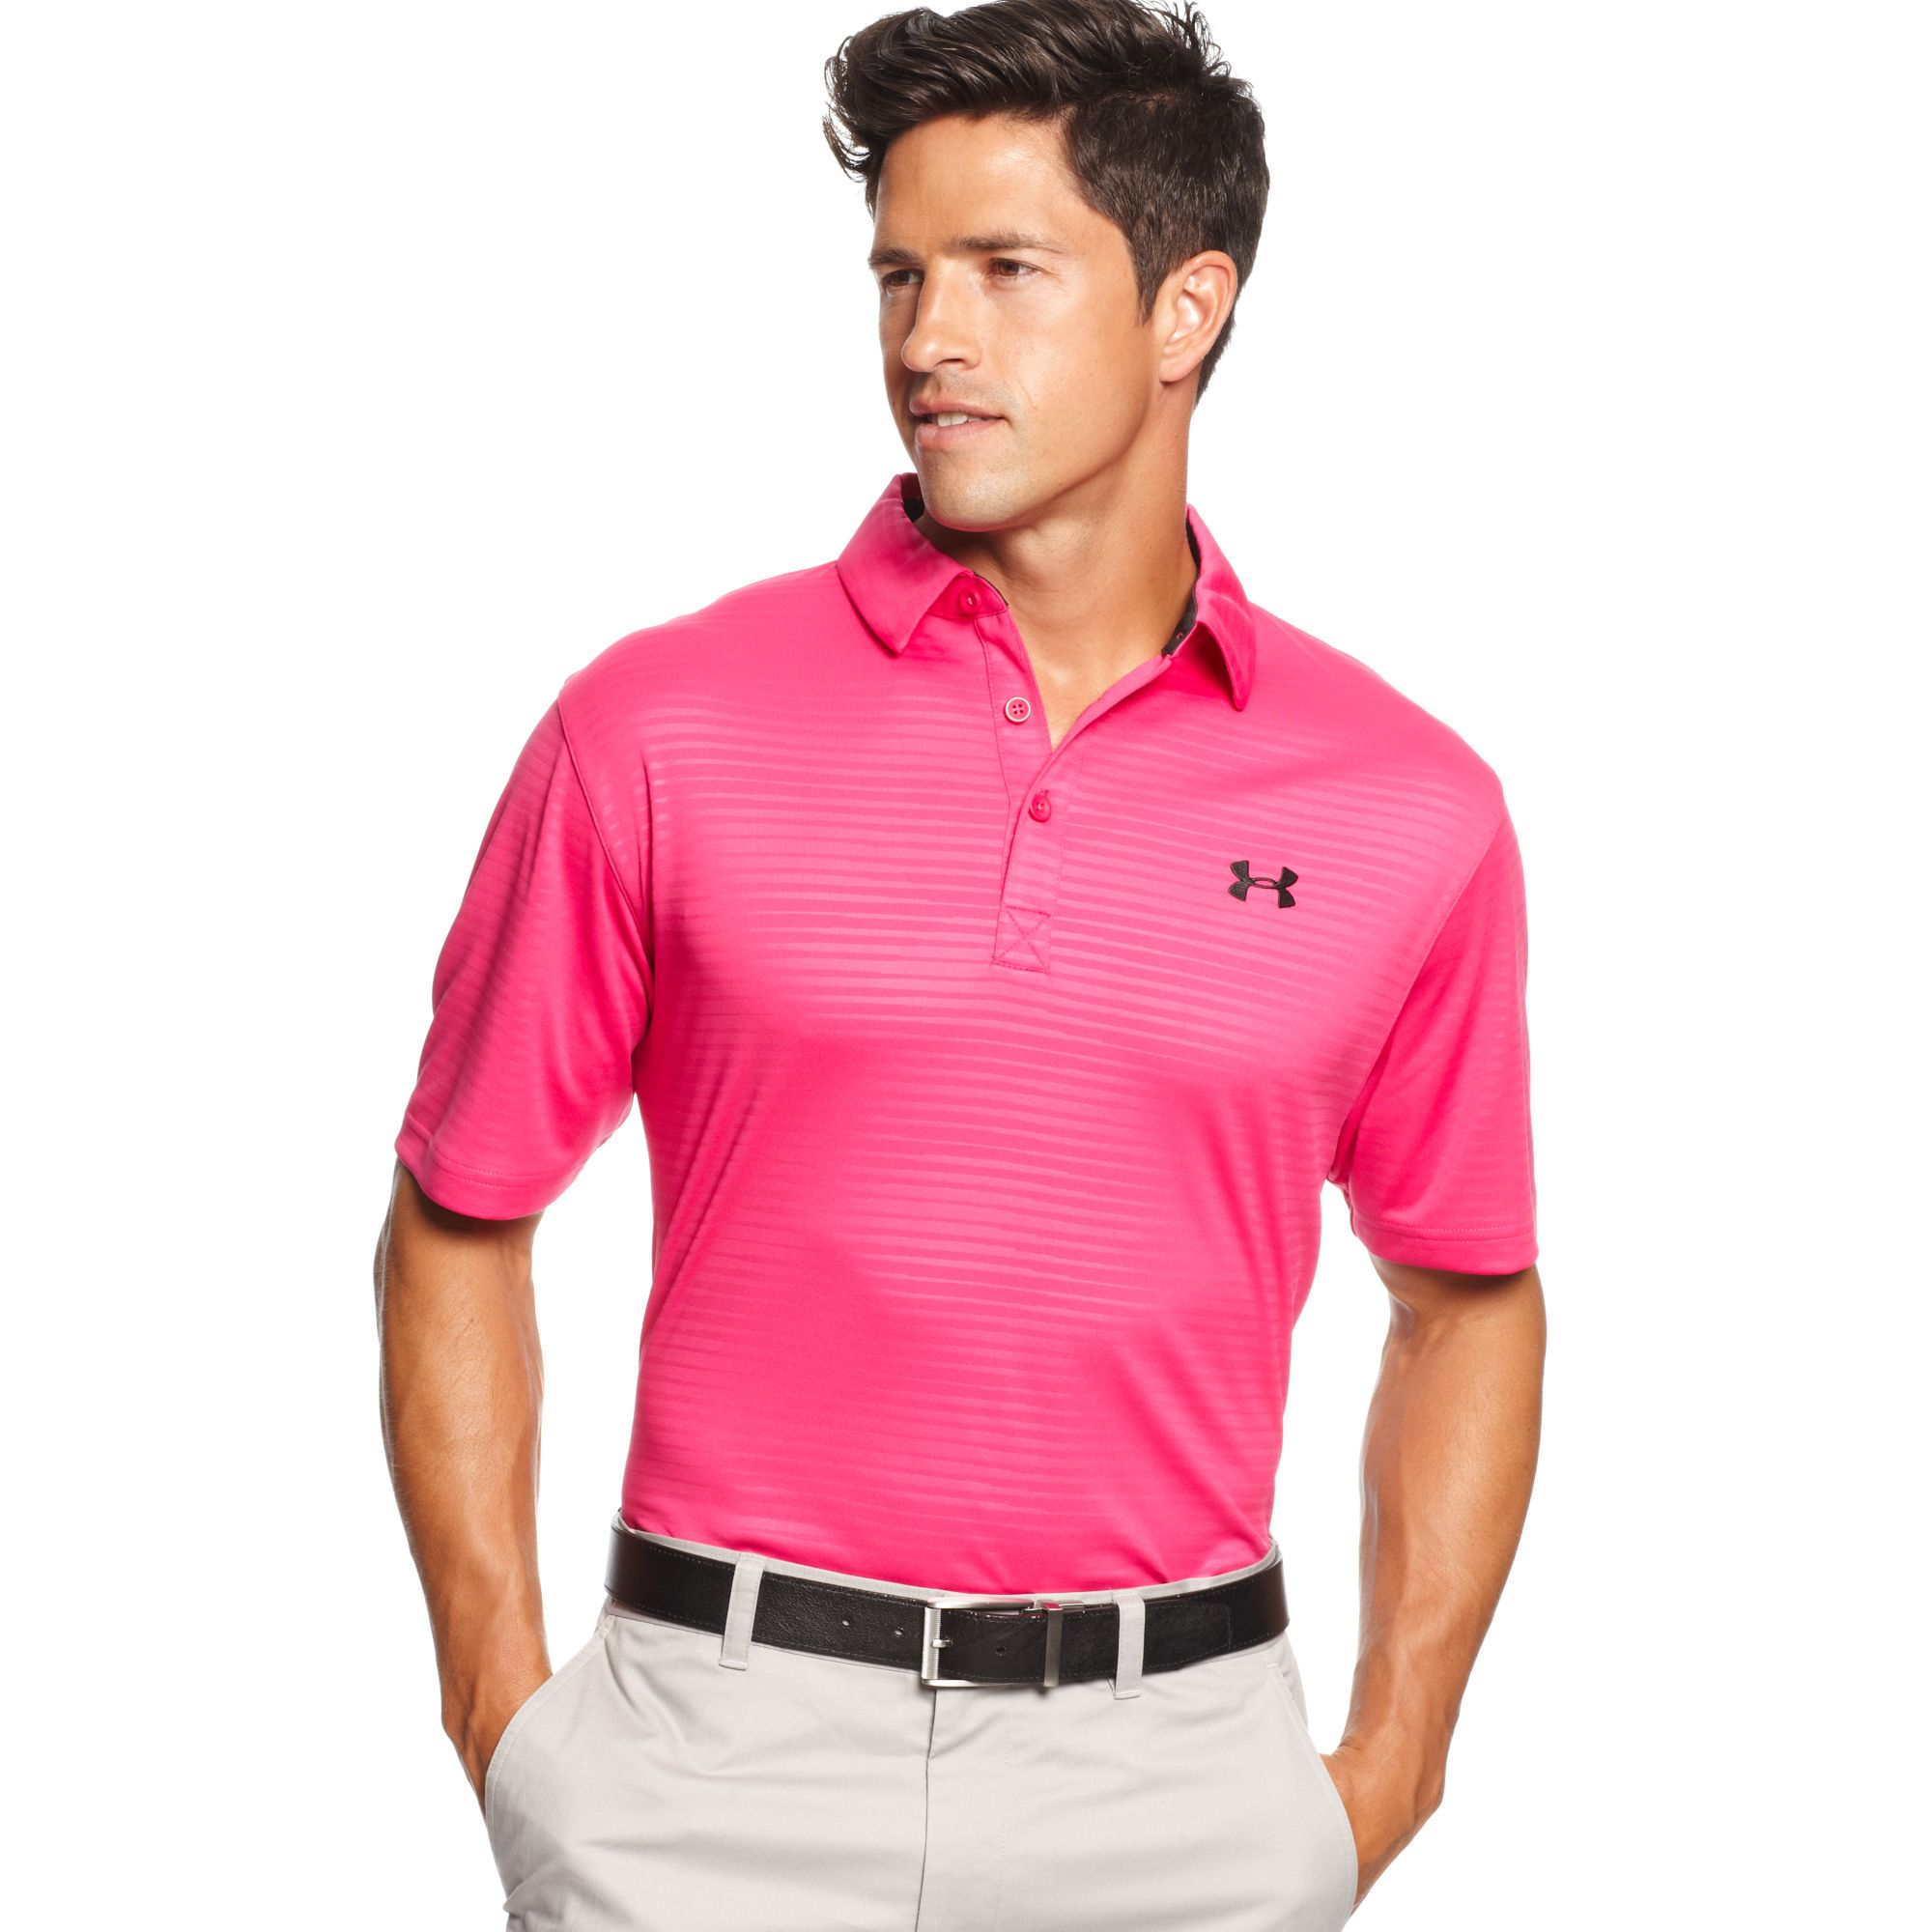 Under Armour Mens Polo Shirts Clearance